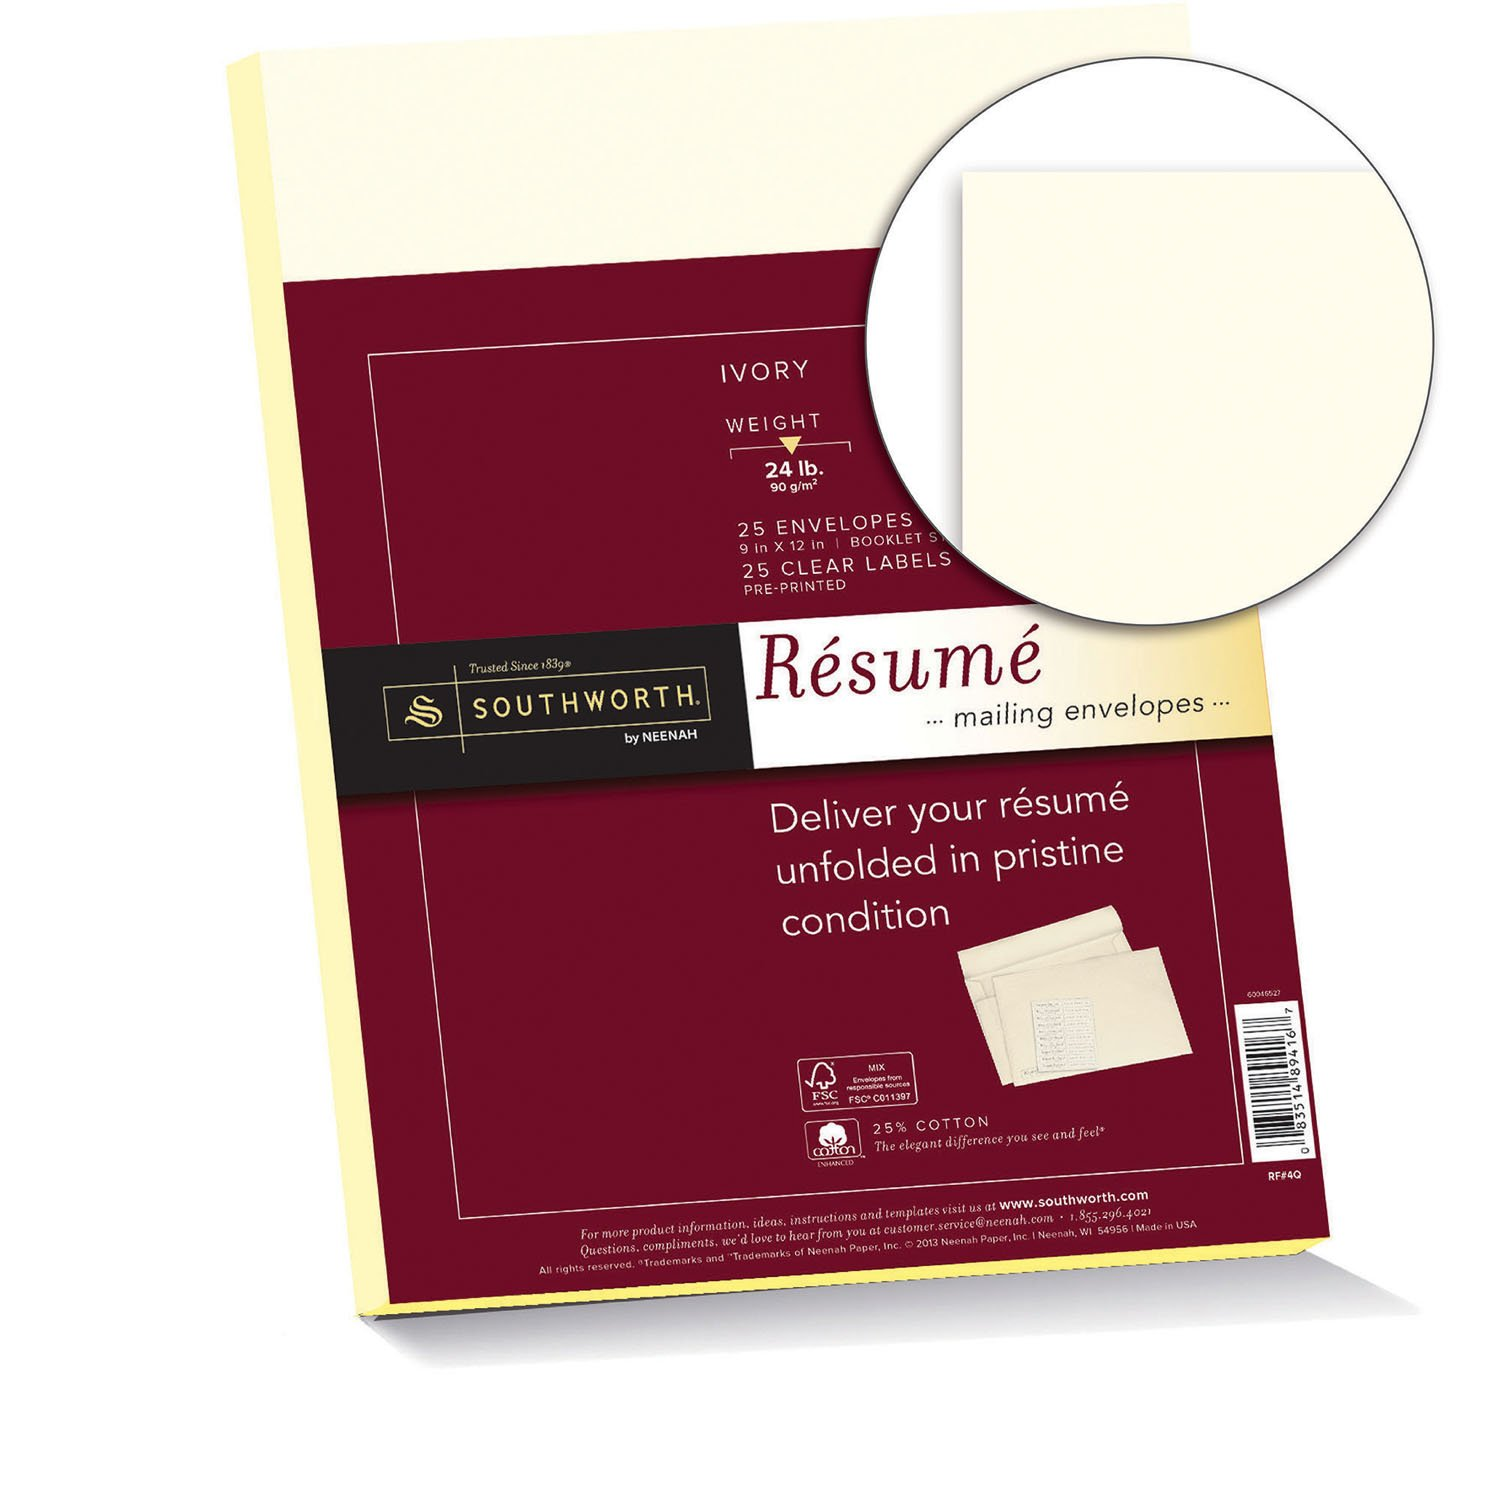 amazoncom southworth resume envelopes 9x12 inches and labels 25 cotton 24 lb ivory 25 count envelopes and 25 count labels rf4q southworth